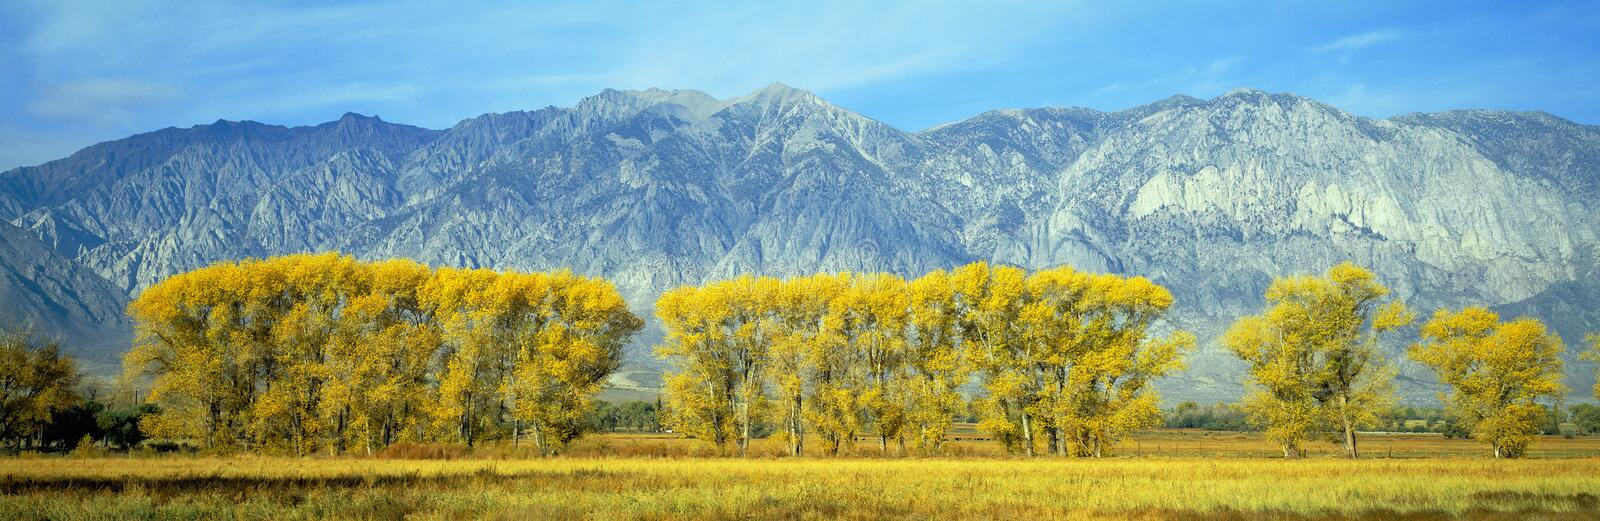 Download Autumn Color Along Highway 395, Royalty Free Stock Photography - Image: 23170987